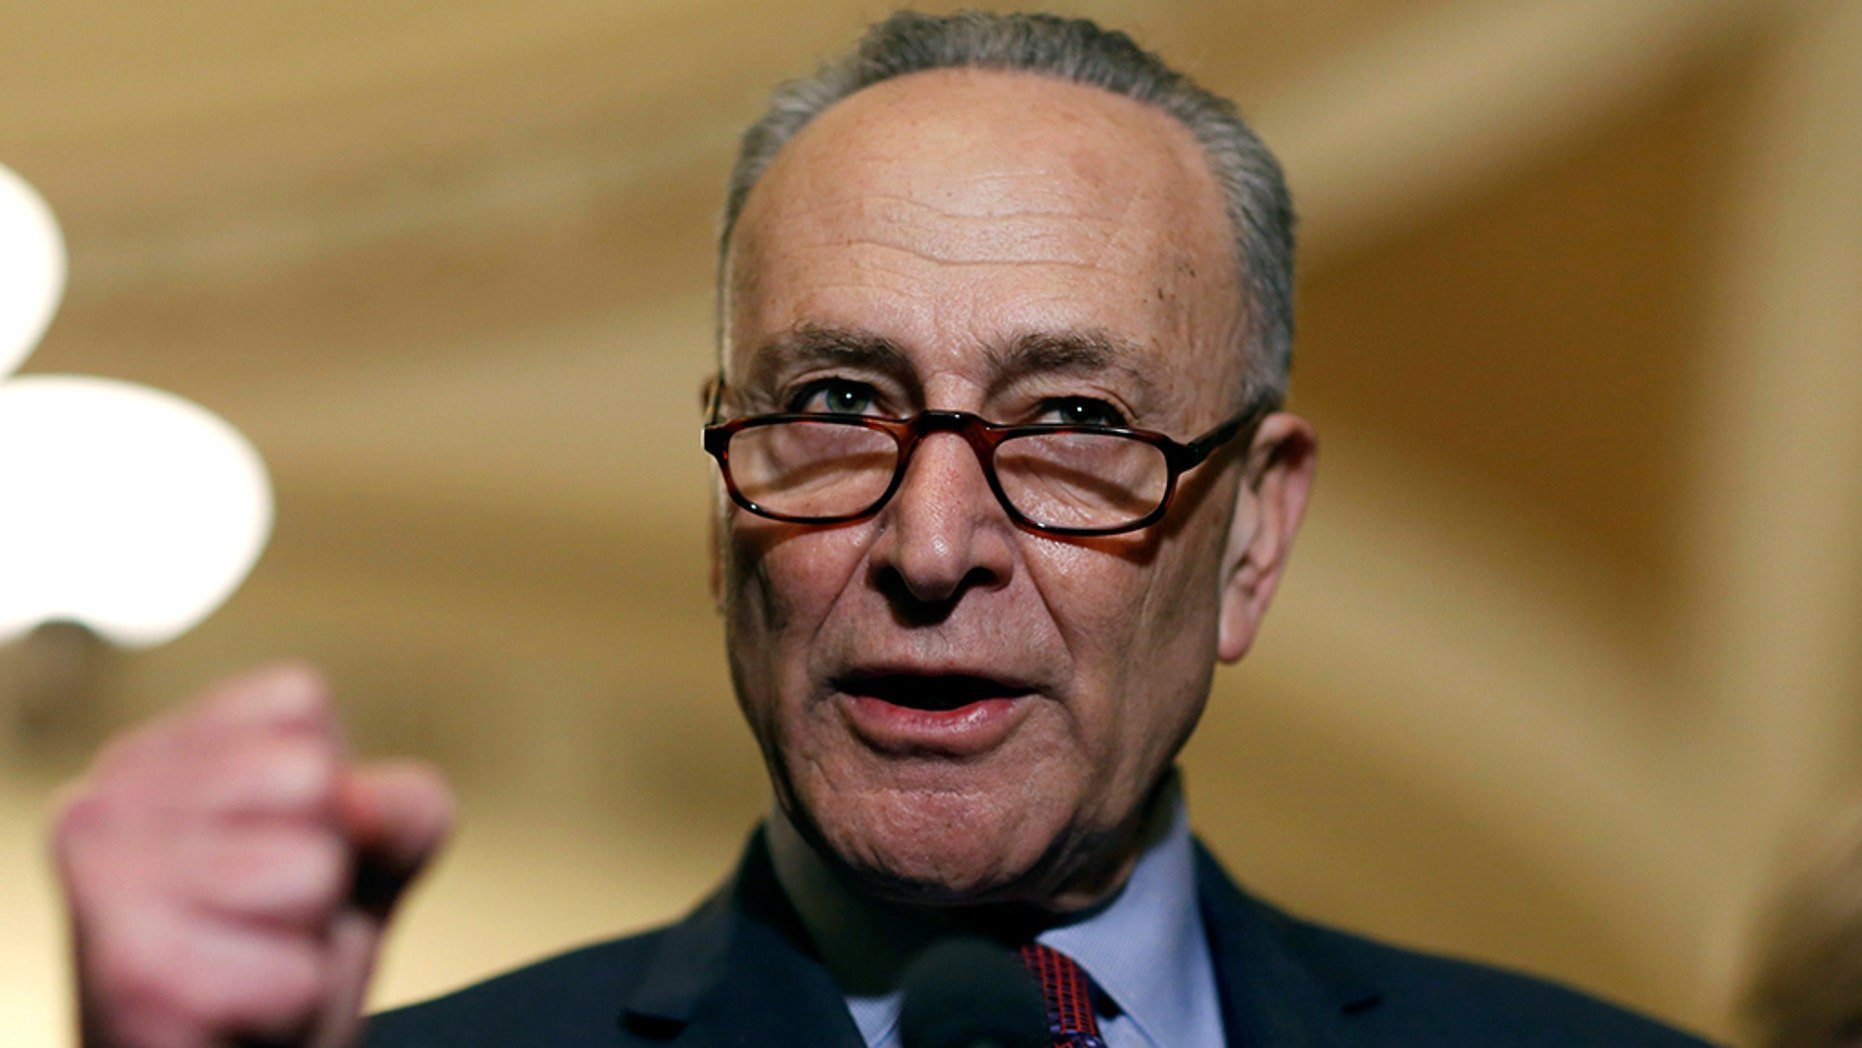 Senate Minority Leader Chuck Schumer (D-NY) speaks after the Senate Democratic weekly policy luncheon on Capitol Hill in Washington, U.S., March 6, 2018. REUTERS/Joshua Roberts - RC130406A550